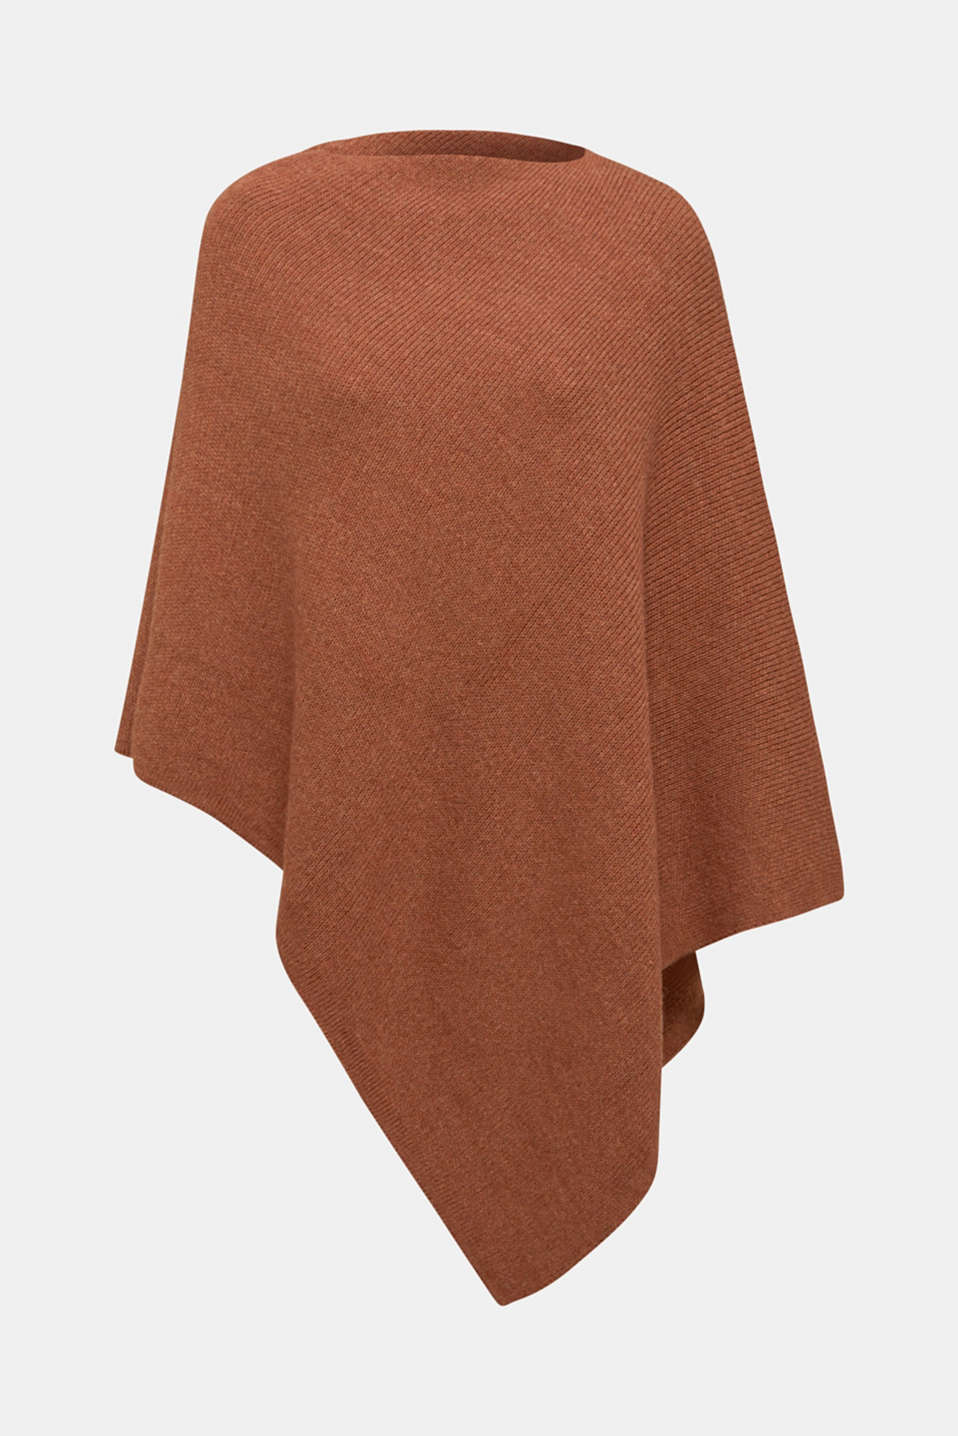 Esprit - Containing wool and alpaca: poncho in a melange finish